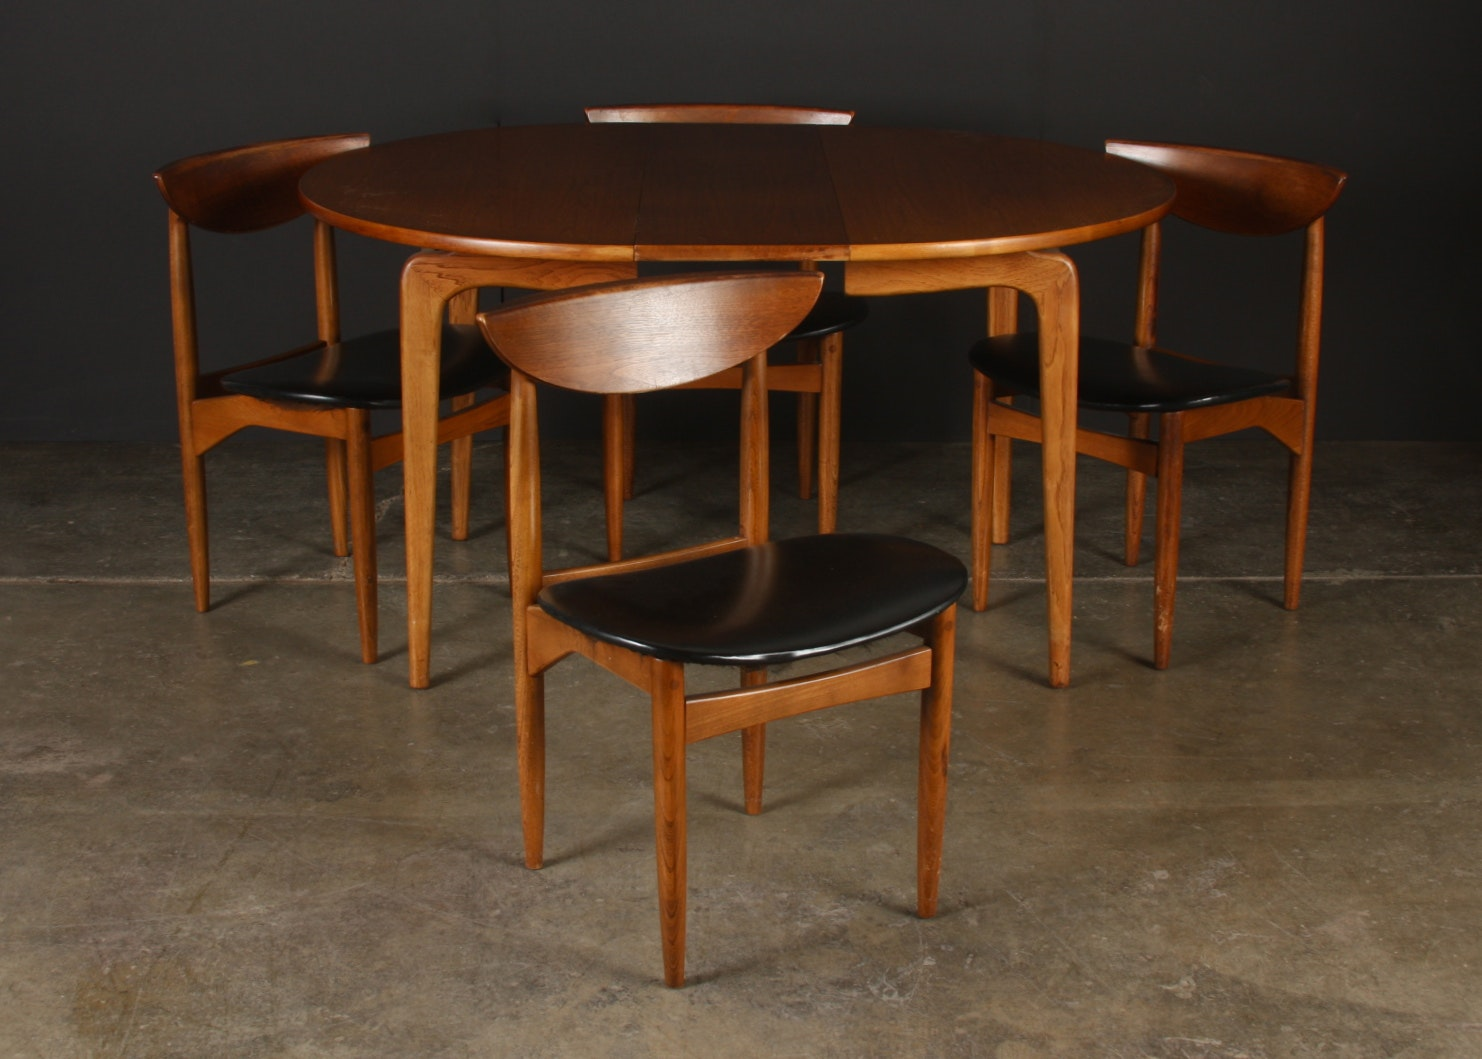 Lane Co Mid century Modern Dining Table and Four Chairs  : IMG1585JPGixlibrb 11 from www.ebth.com size 880 x 906 jpeg 109kB